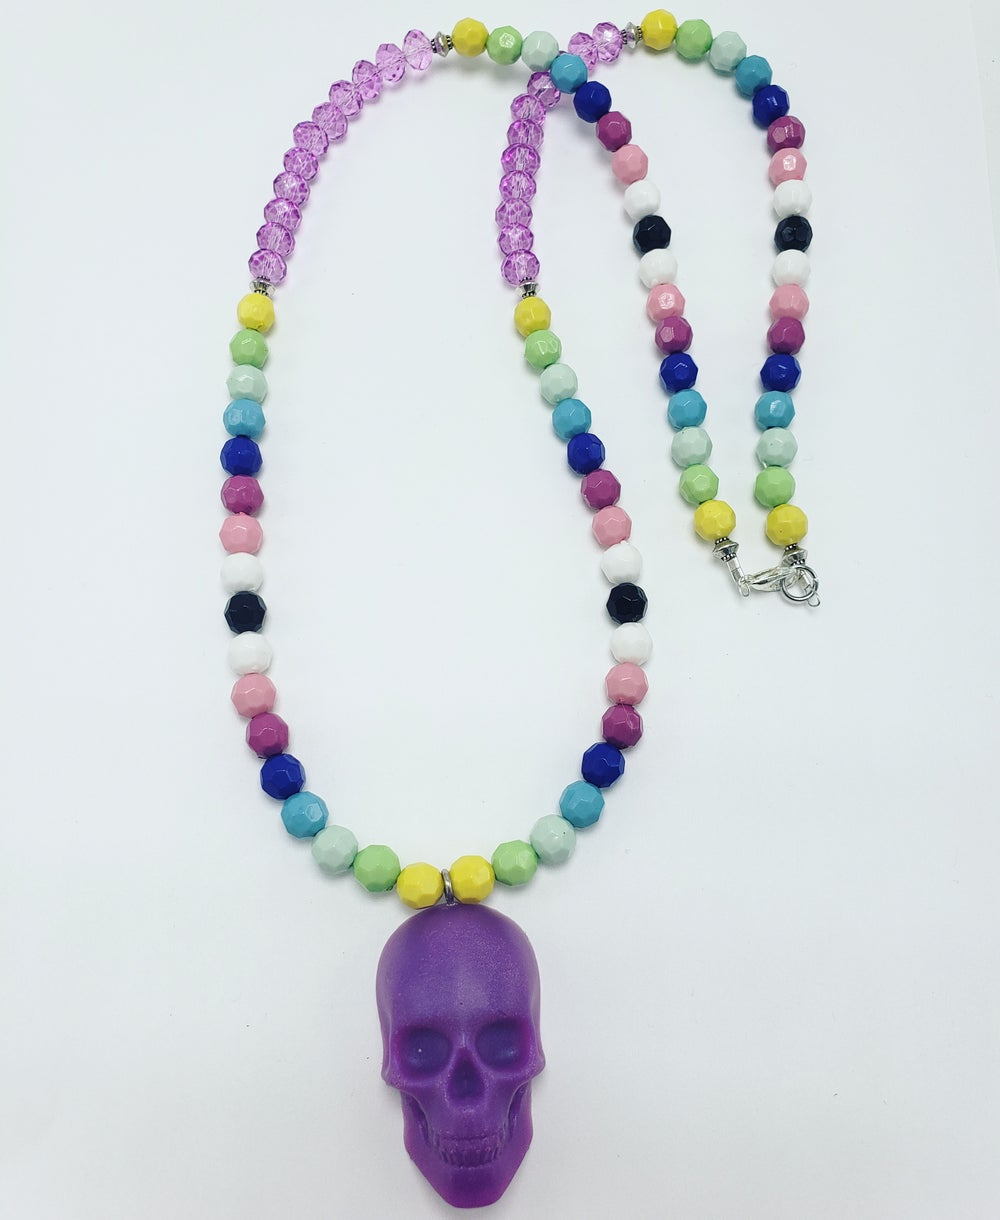 Image of Purple skull necklace